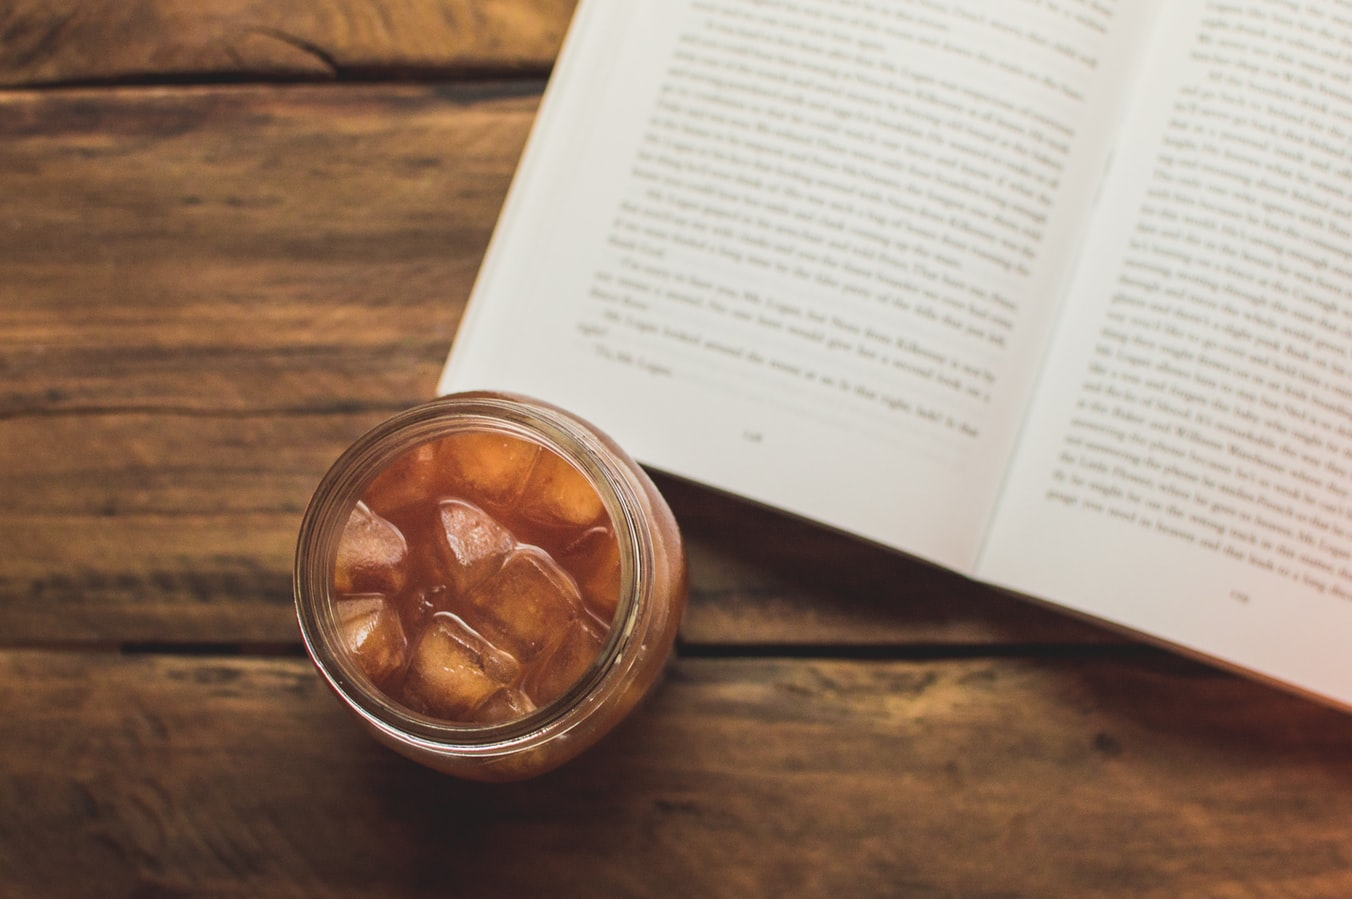 Jar of iced tea near book